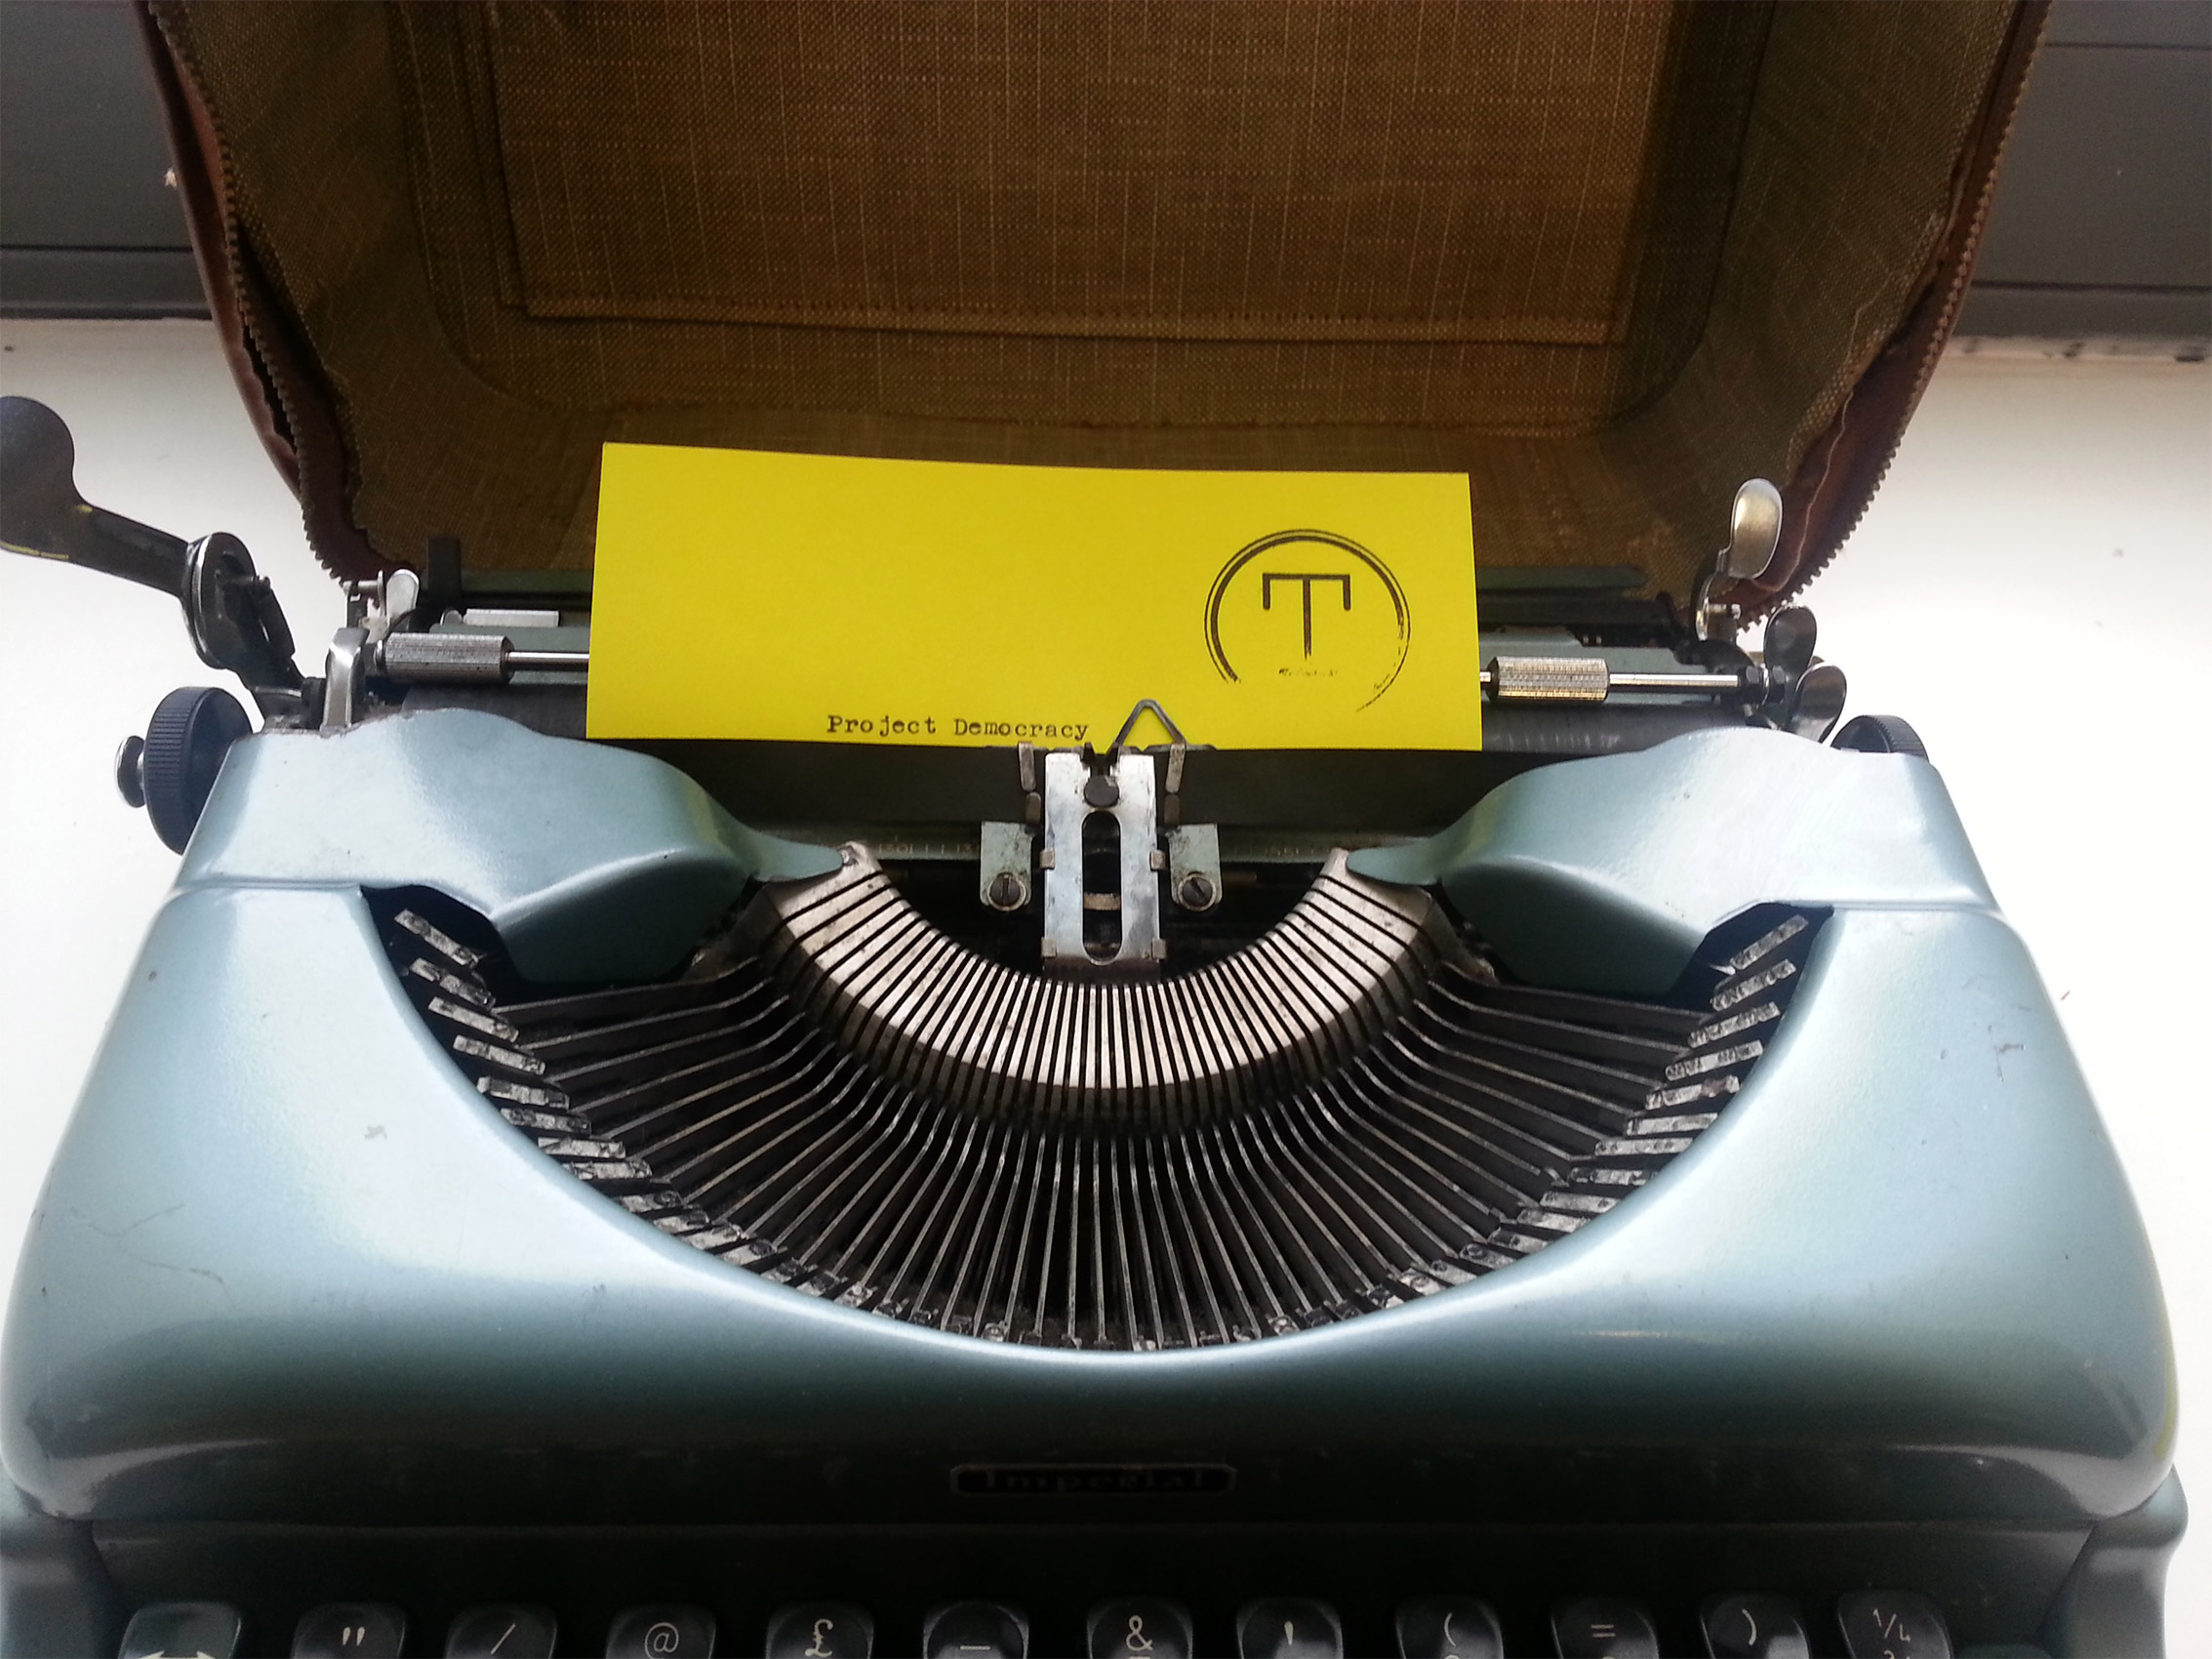 Project Typewriter